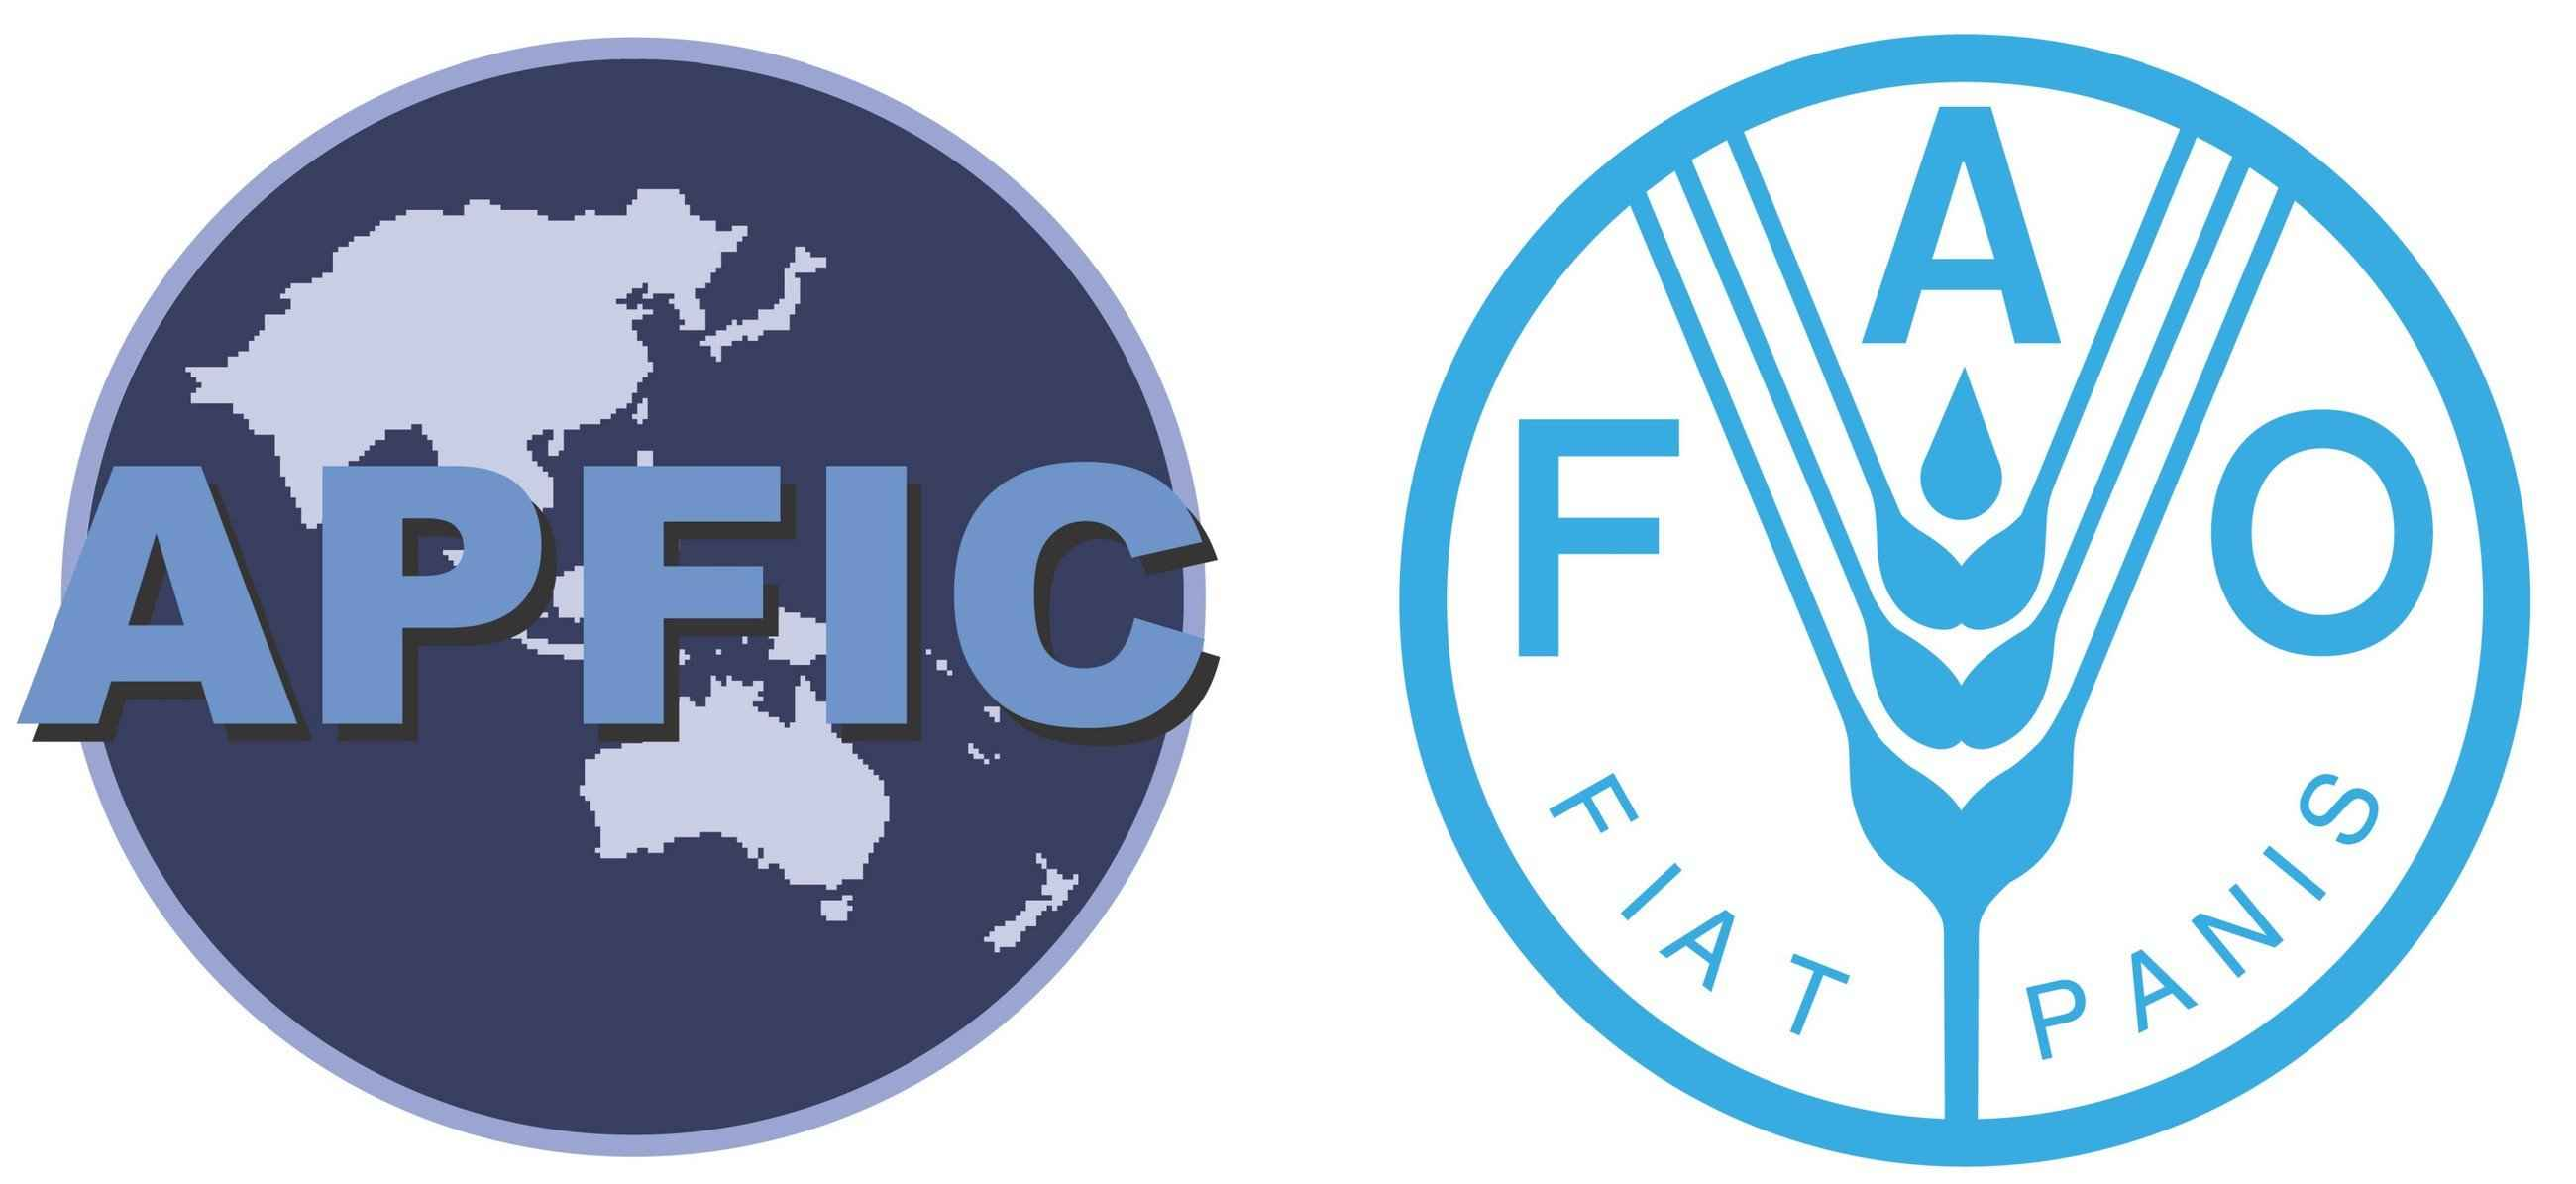 APFIC – Asia-Pacific Fishery Commission Logo [PDF] Vector EPS Free Download, Logo, Icons, Bran ...